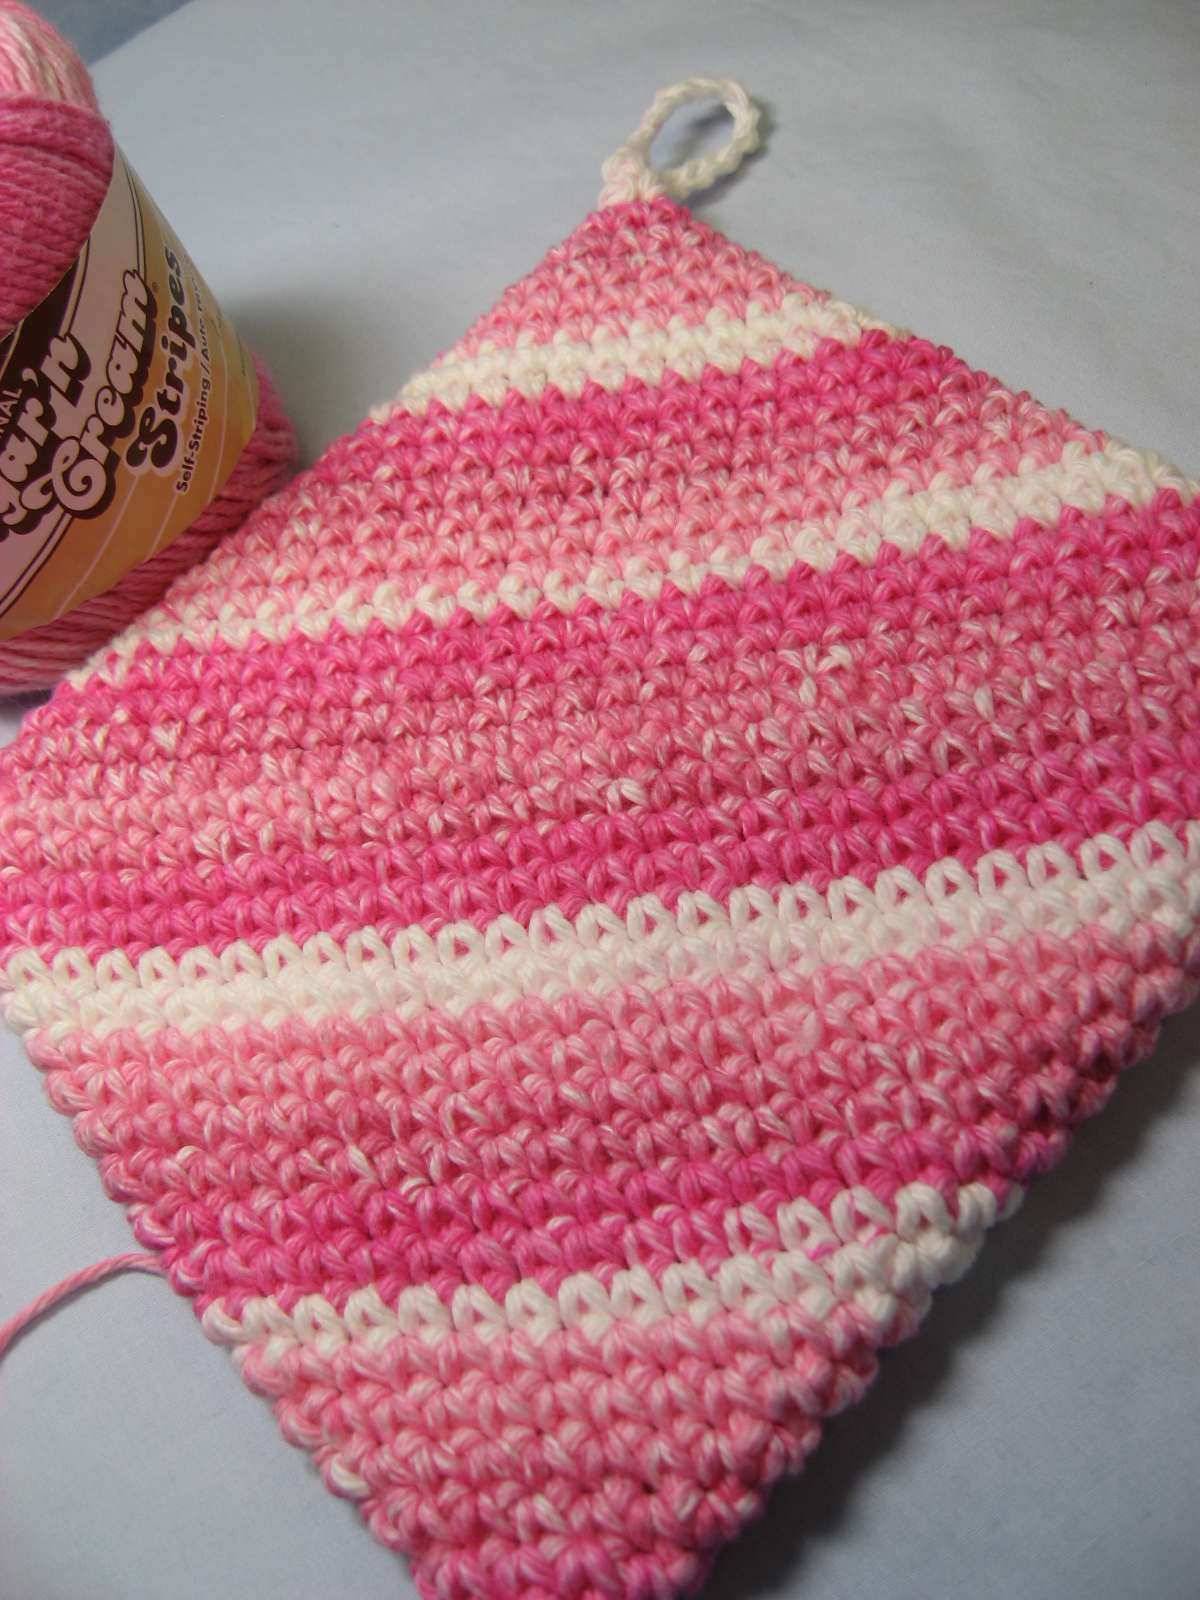 Crochet Patterns Hot Pads : CROCHETED HOT PAD PATTERNS - Crochet and Knitting Patterns